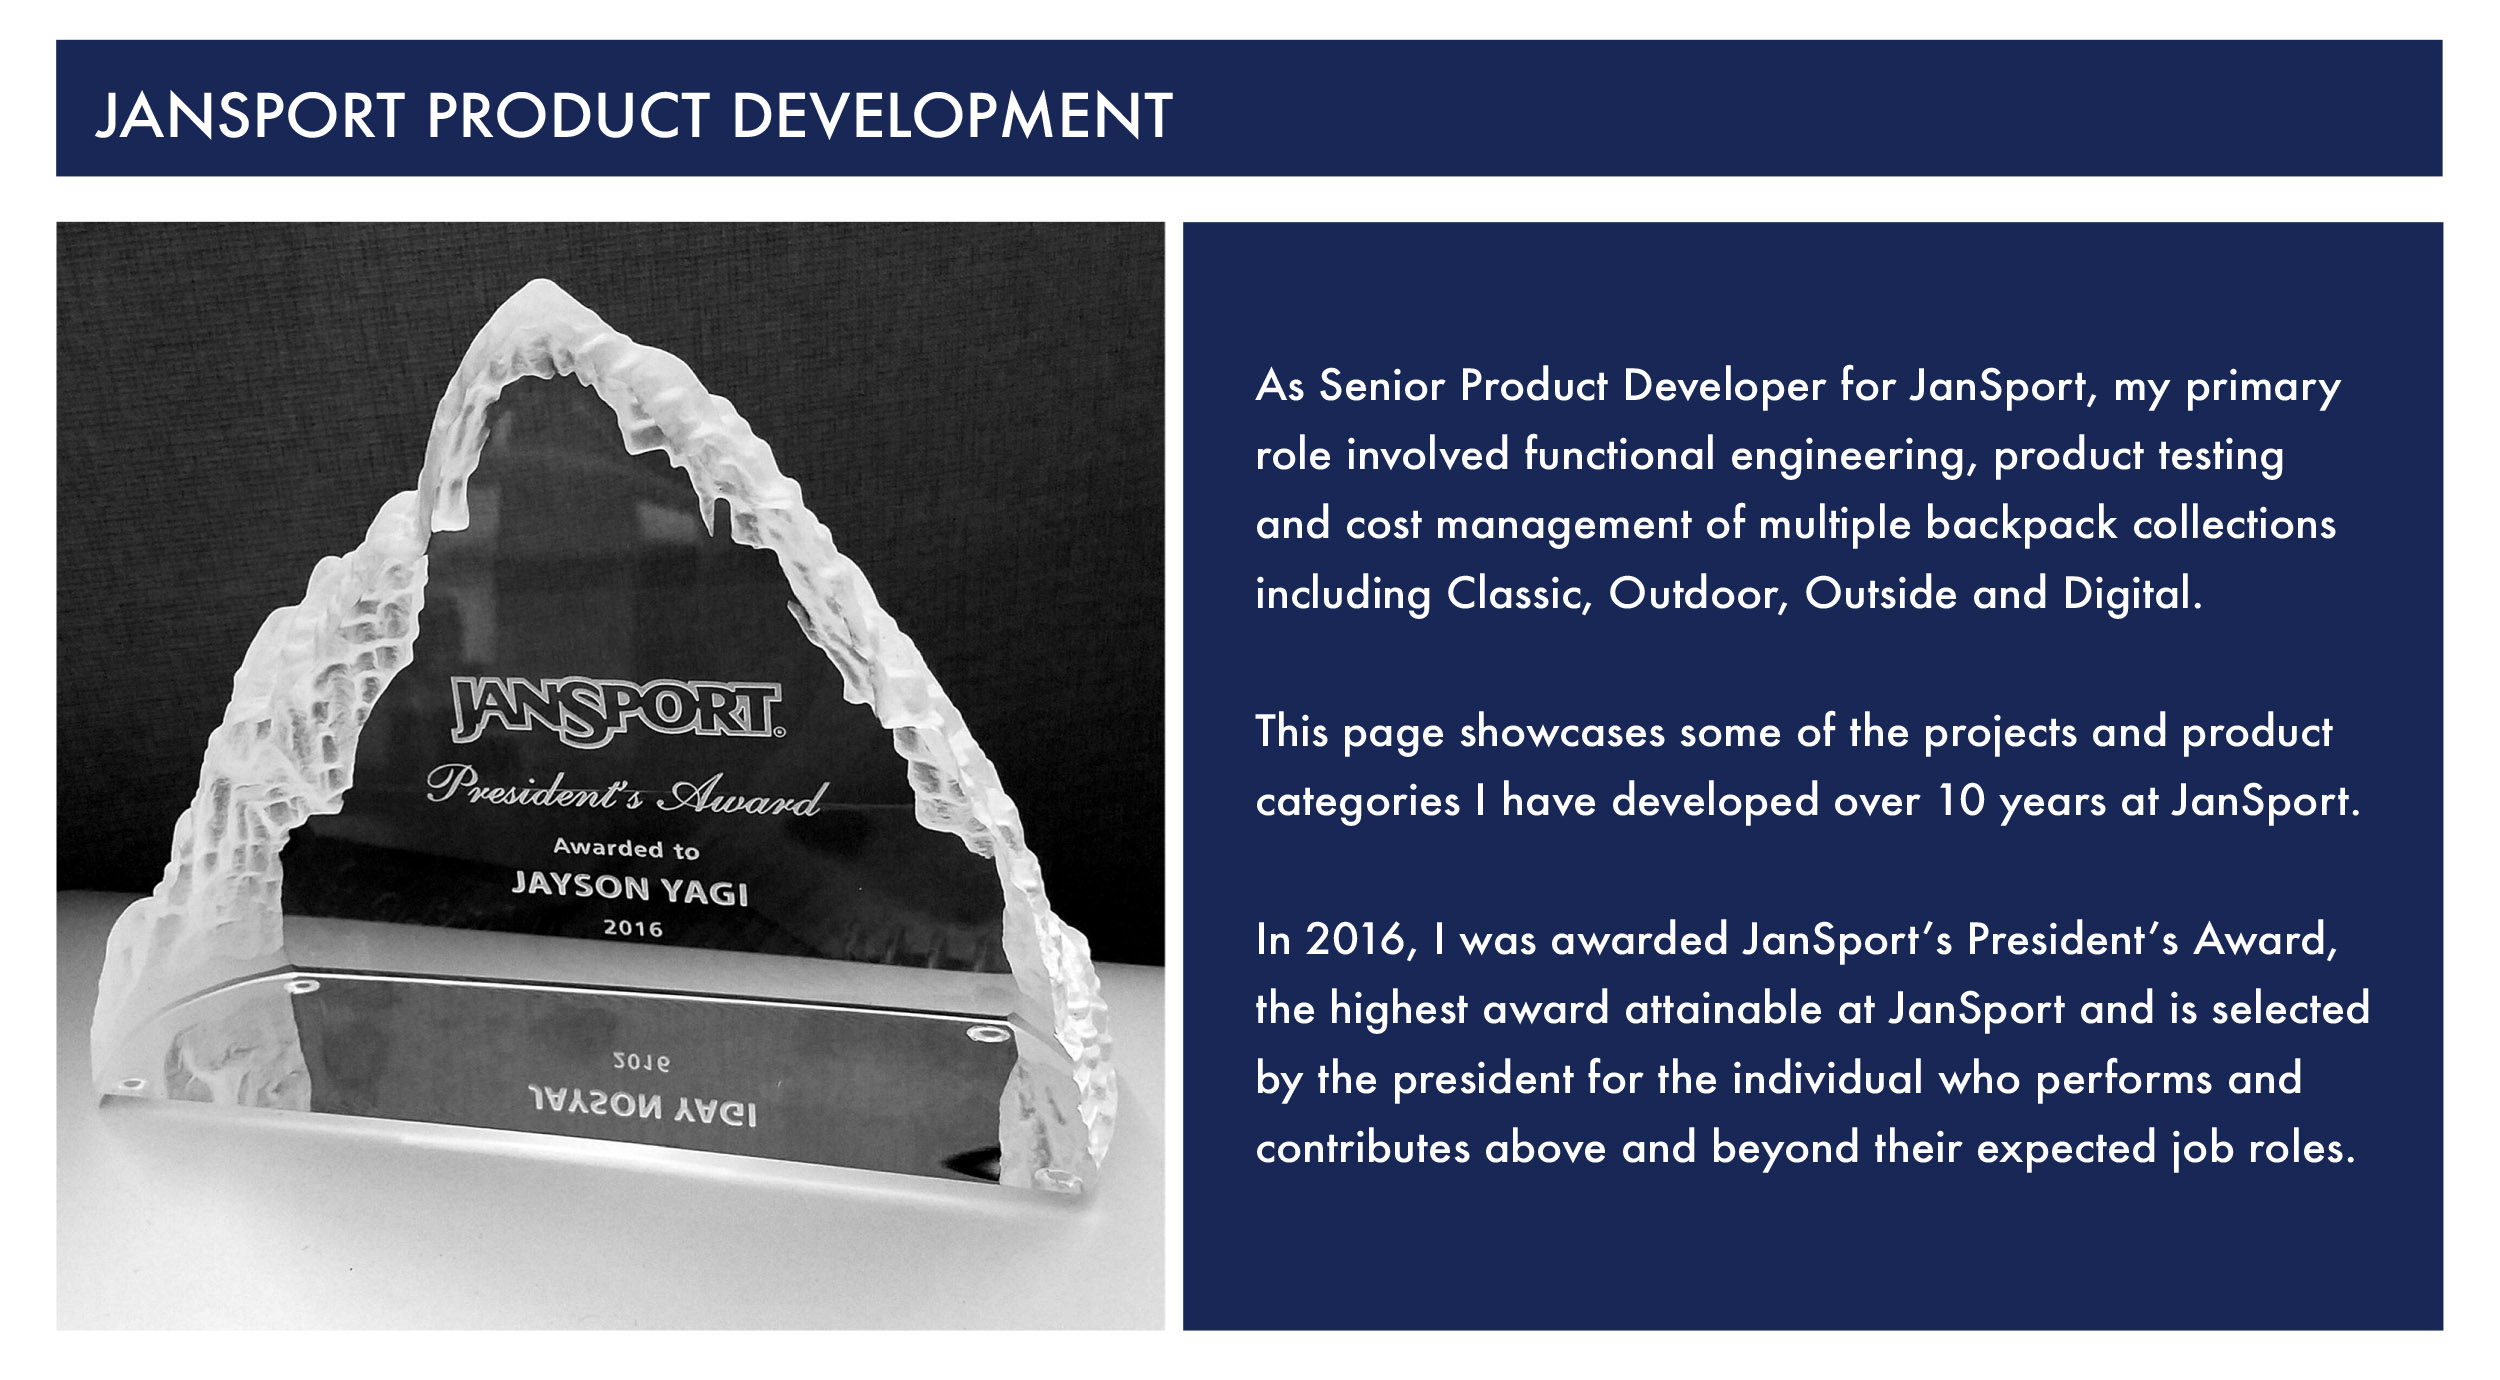 Jansport Senior Product Developer Presidents Award